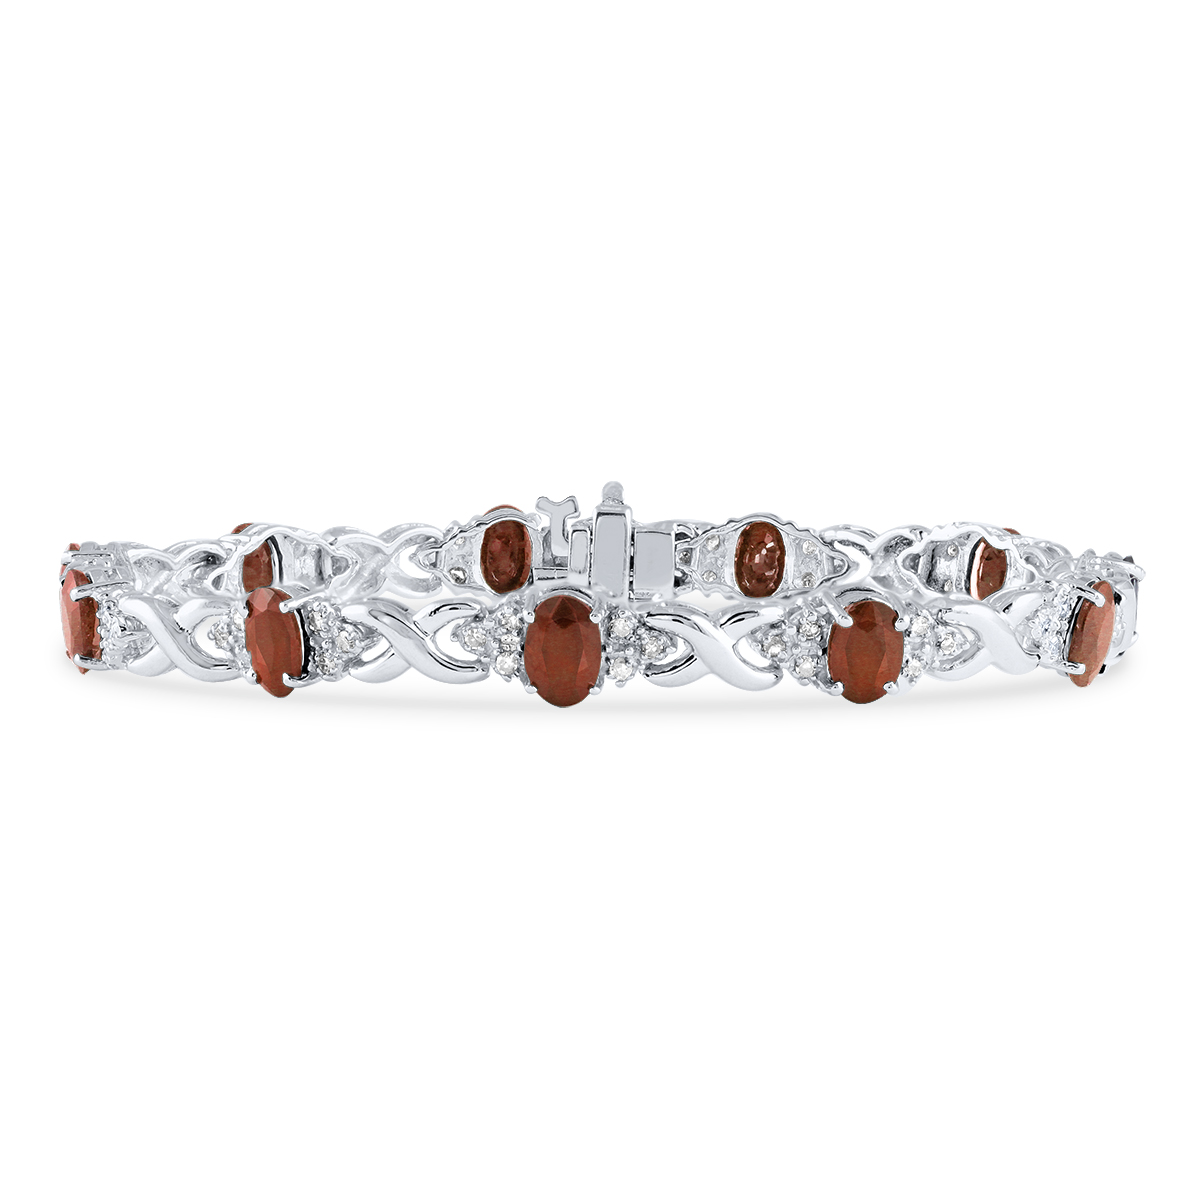 14k White Gold Diamond and Garnet Bracelet SPB8139GT